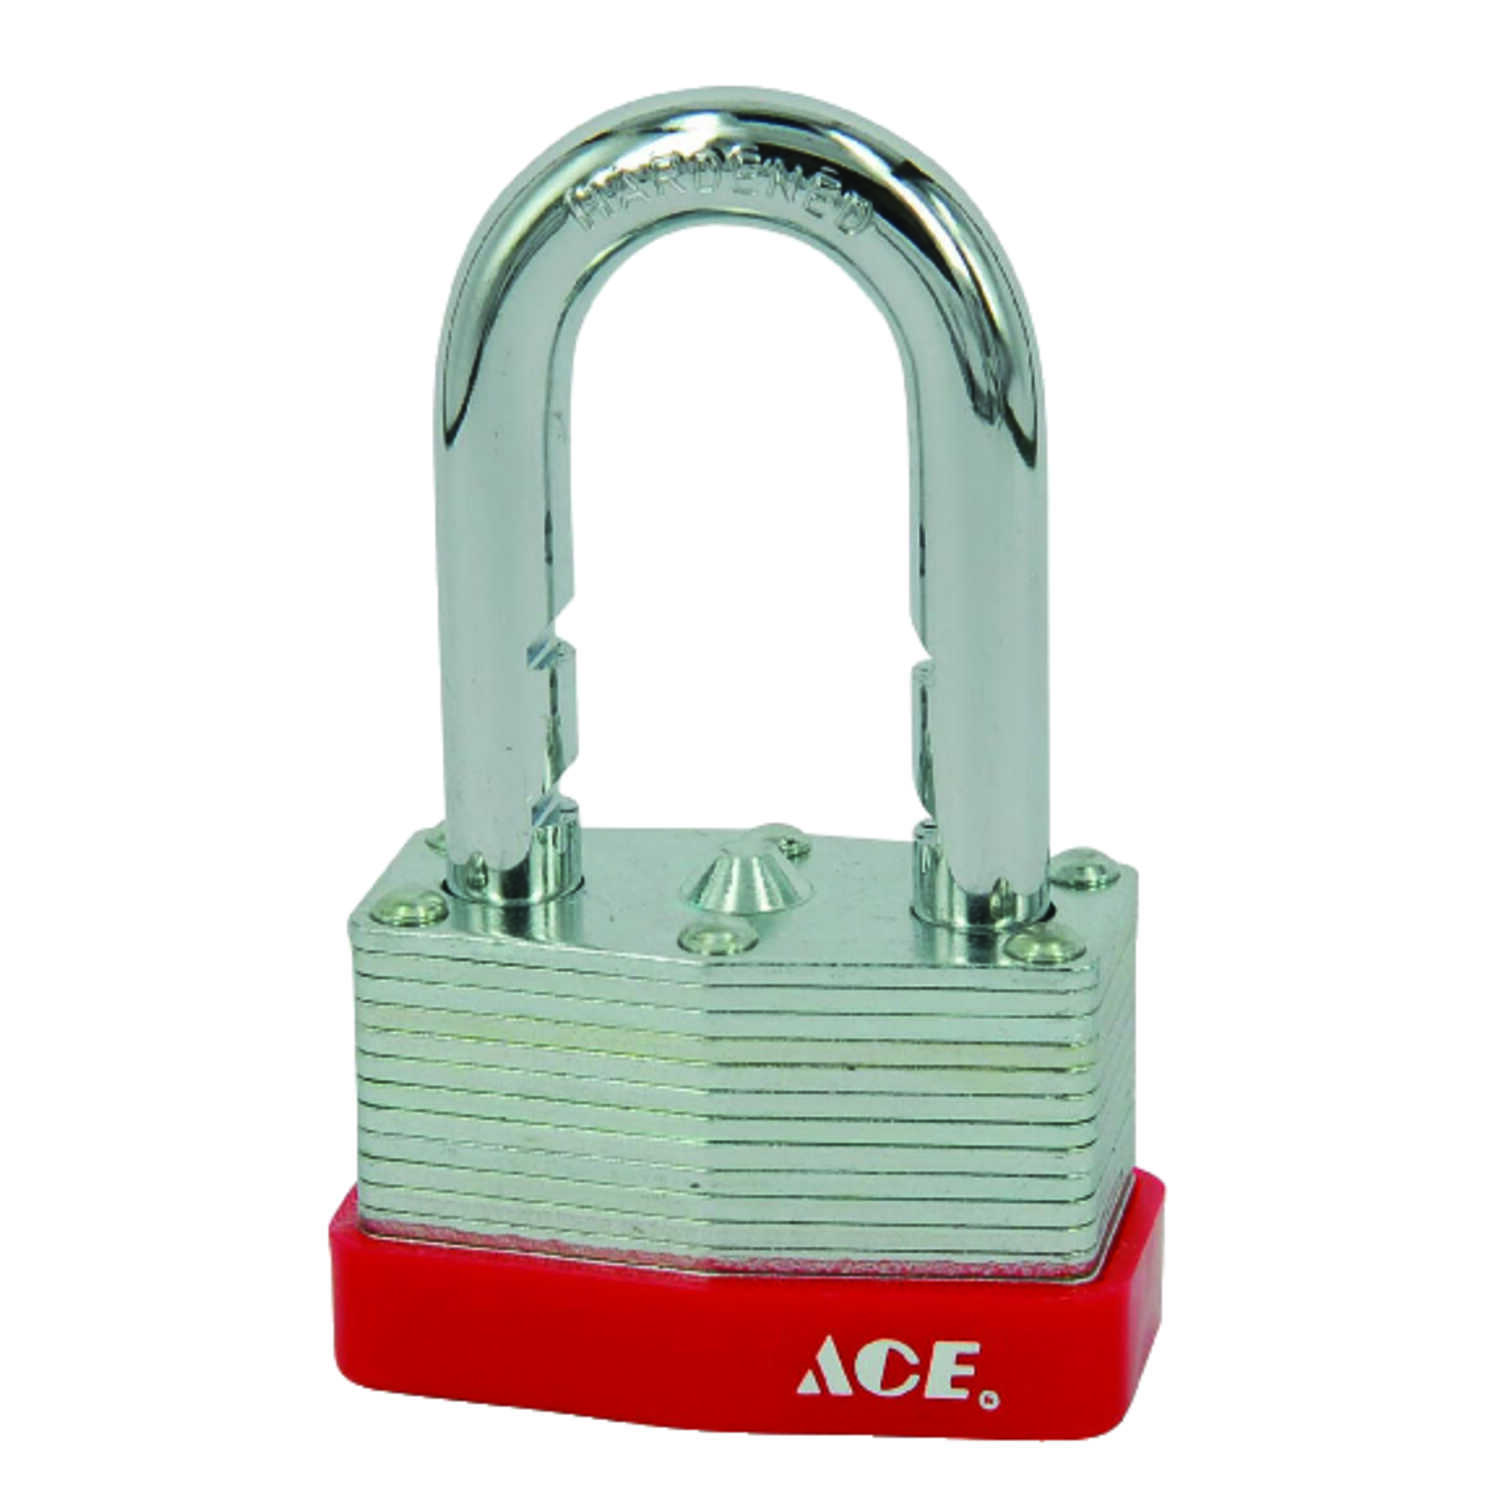 Ace  1.063 in. H x 1-3/4 in. W x 15/16 in. L Steel  Warded Locking  Padlock  1 pk